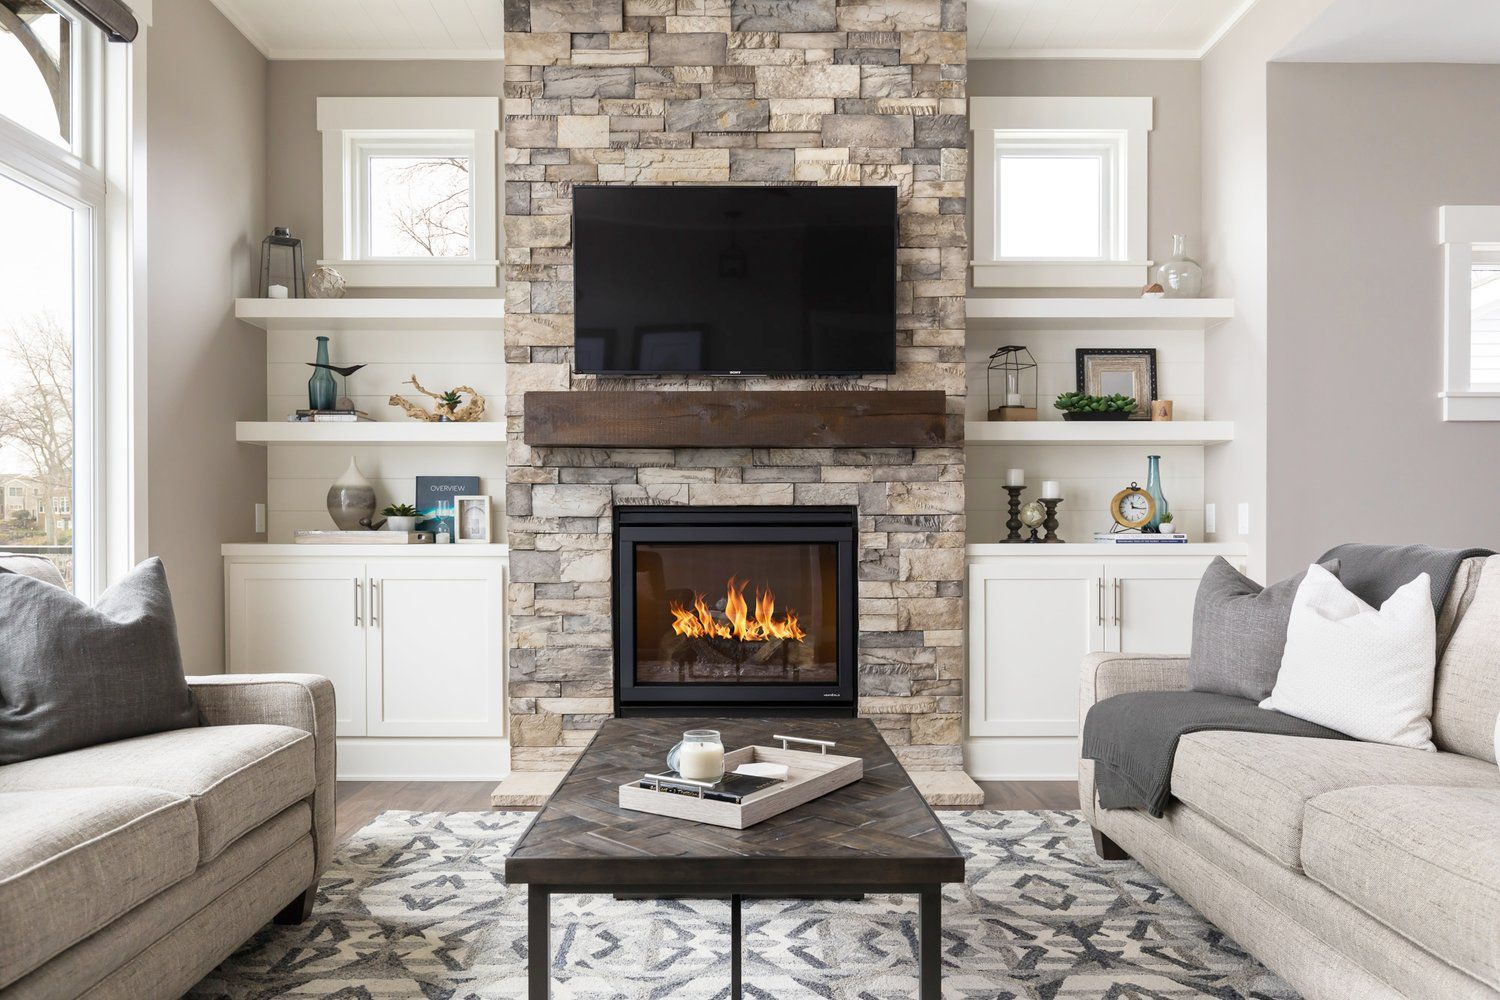 Here's How to Decorate Your Fireplace So It Looks Stylish ...